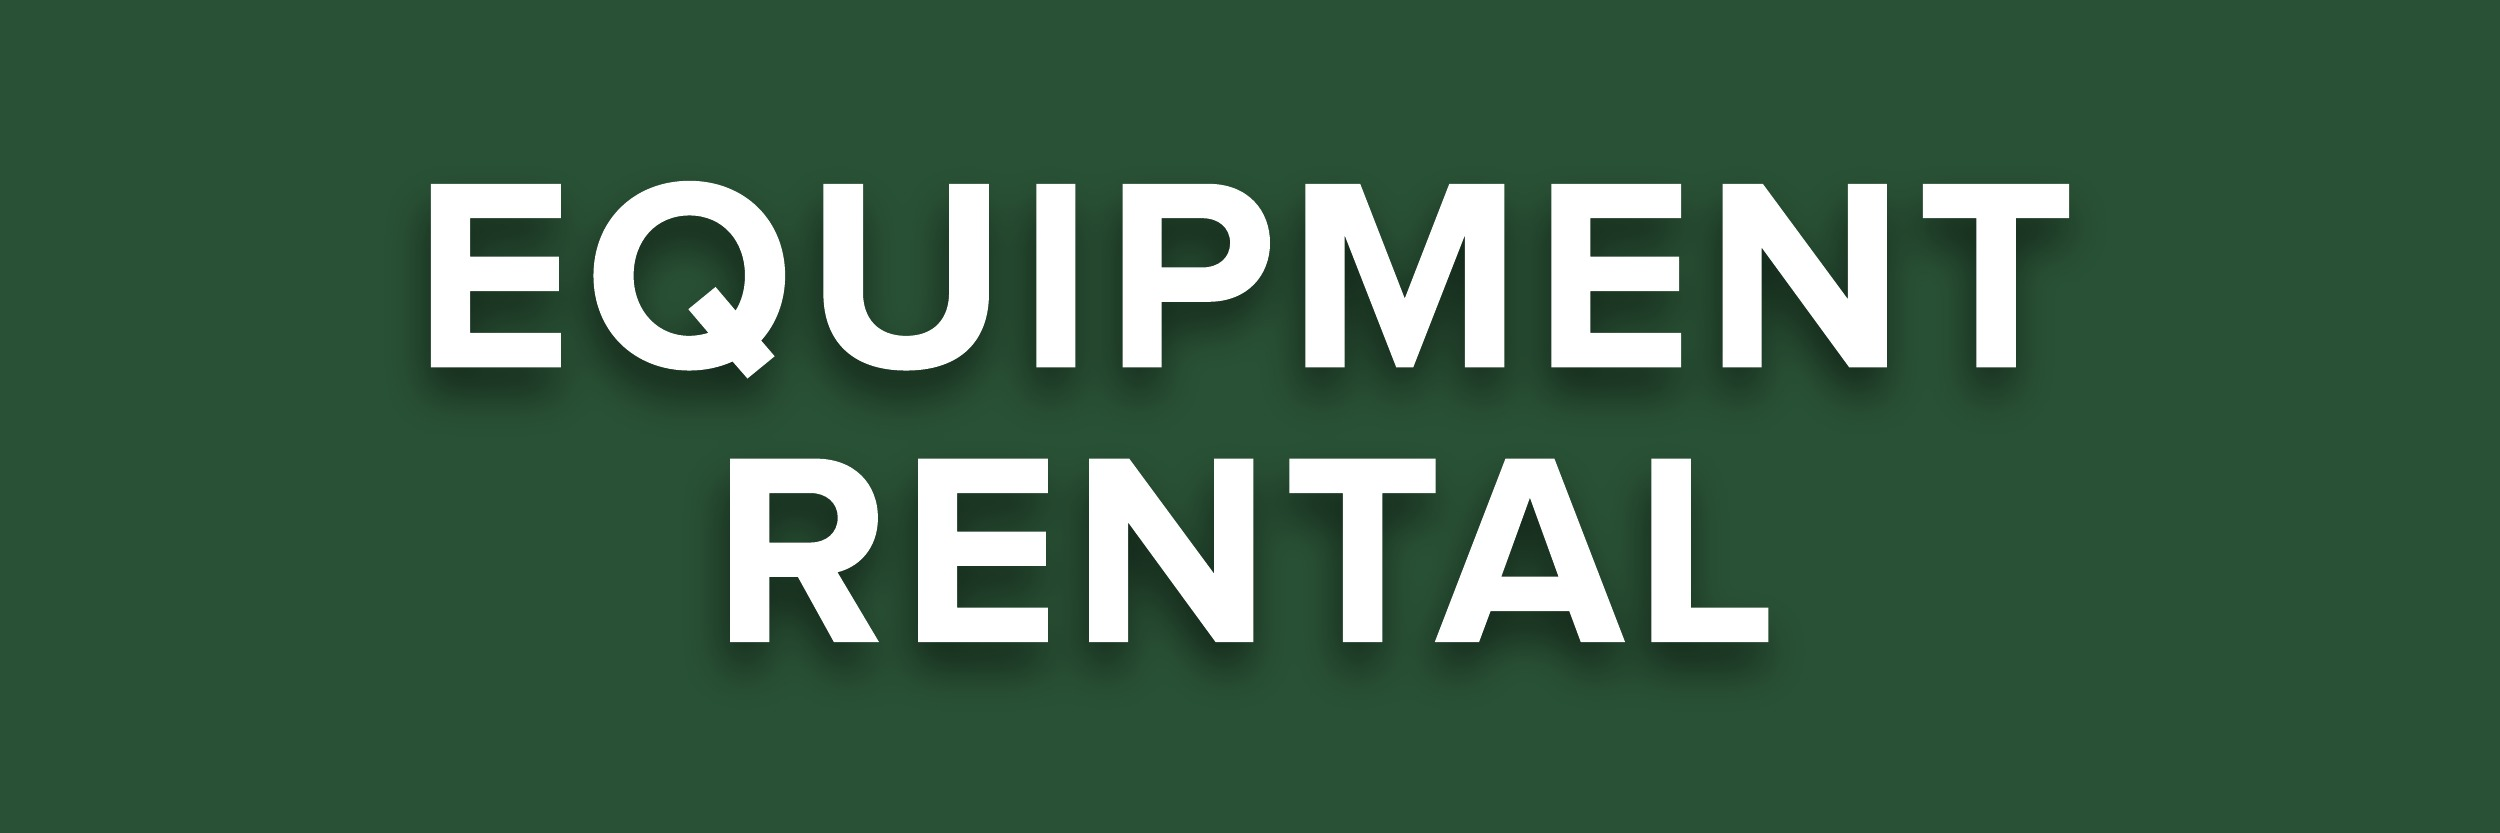 EQUIPMENT RENTAL BTN